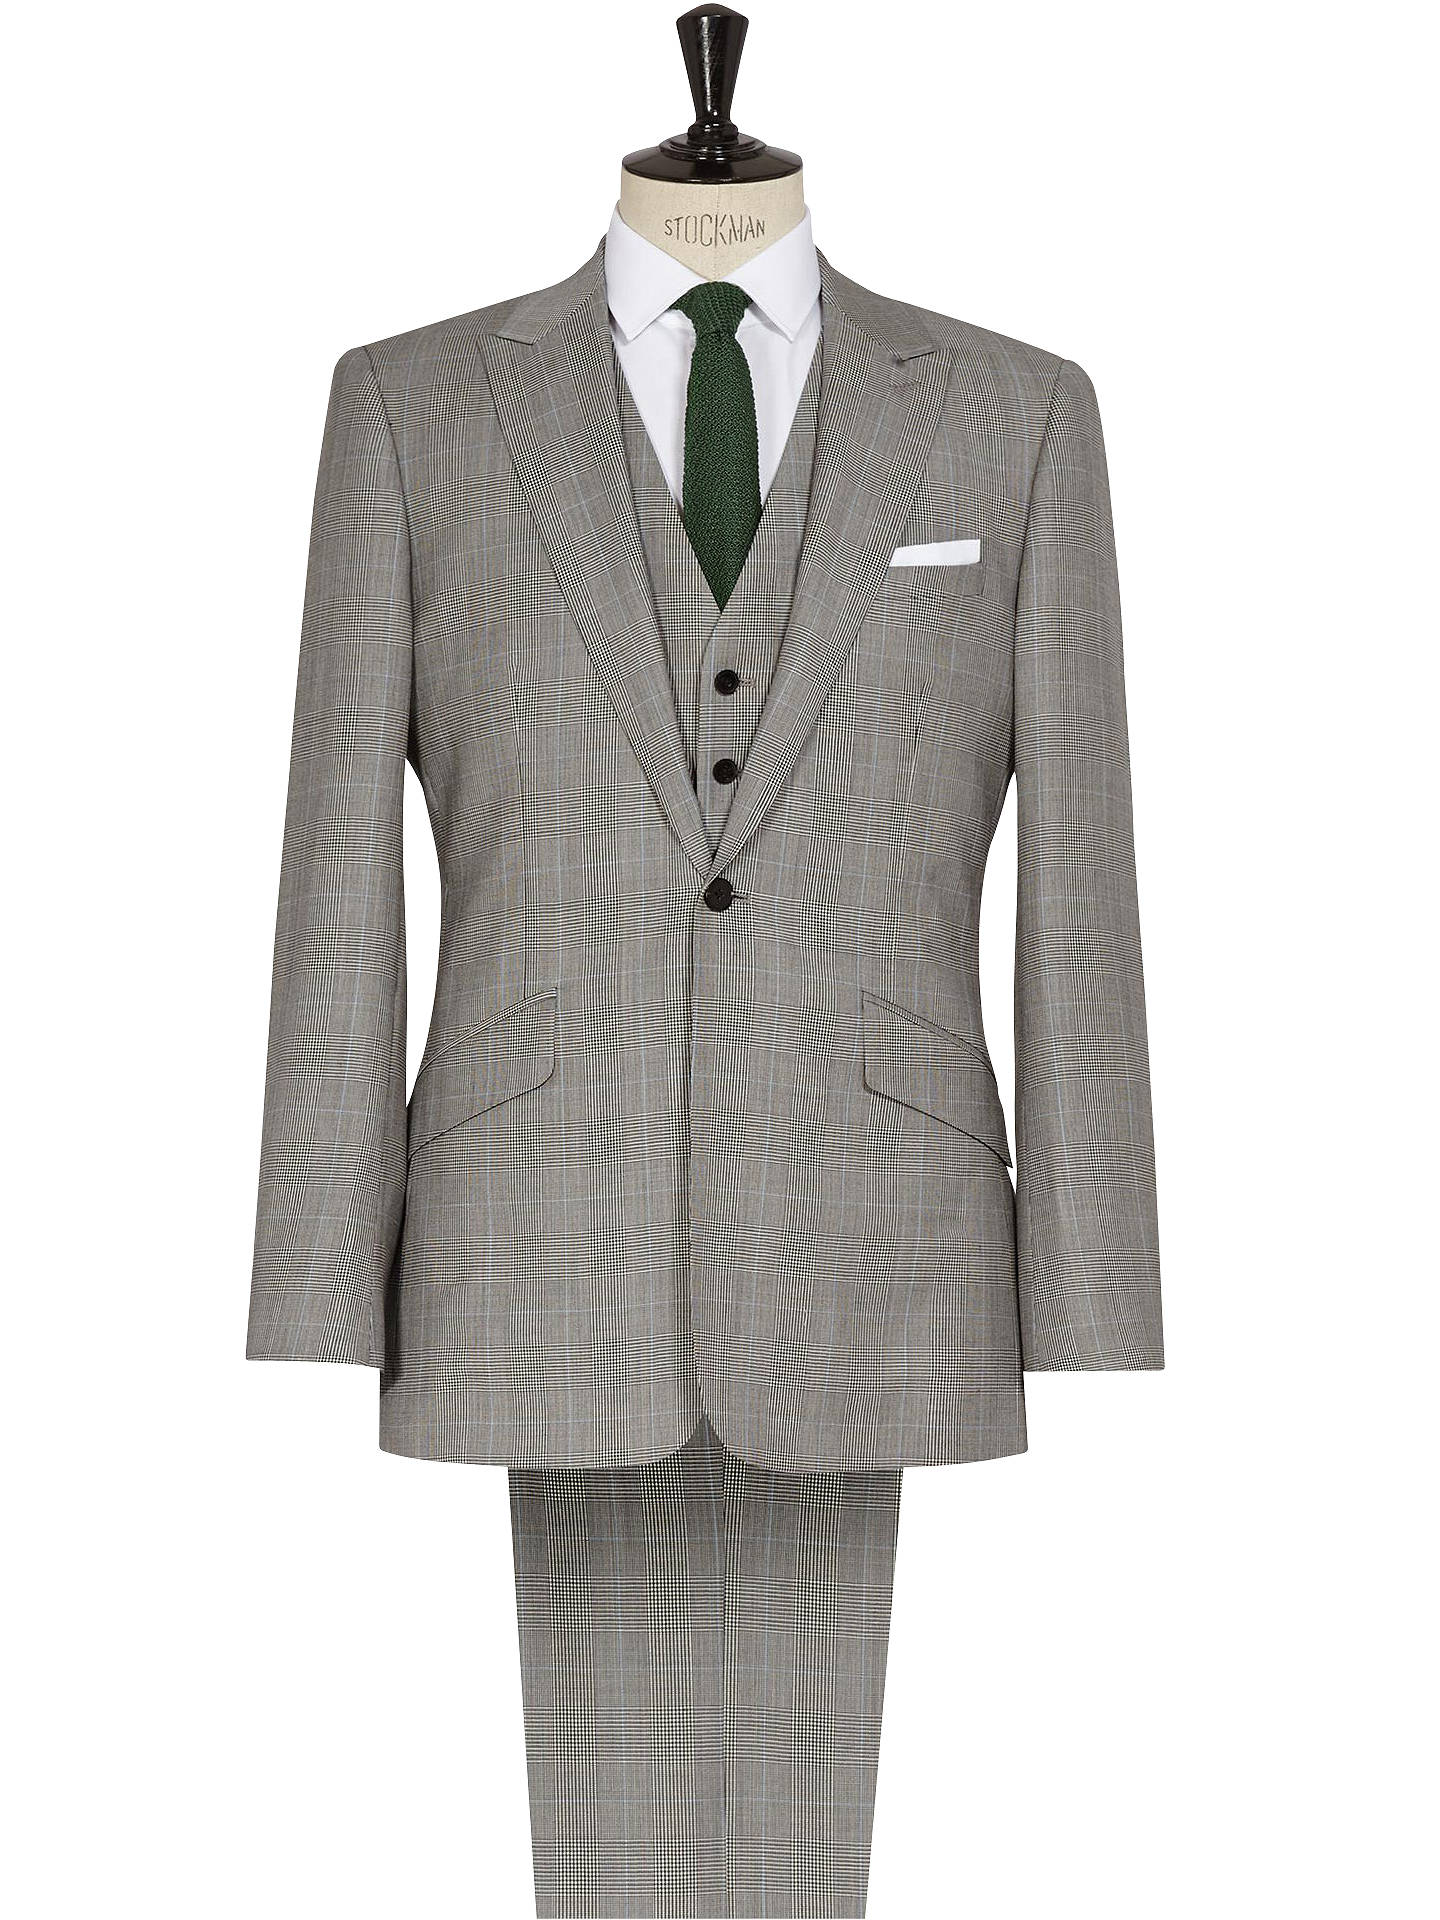 Reiss Hercules 3 Piece Prince Of Wales Check Suit, Grey at